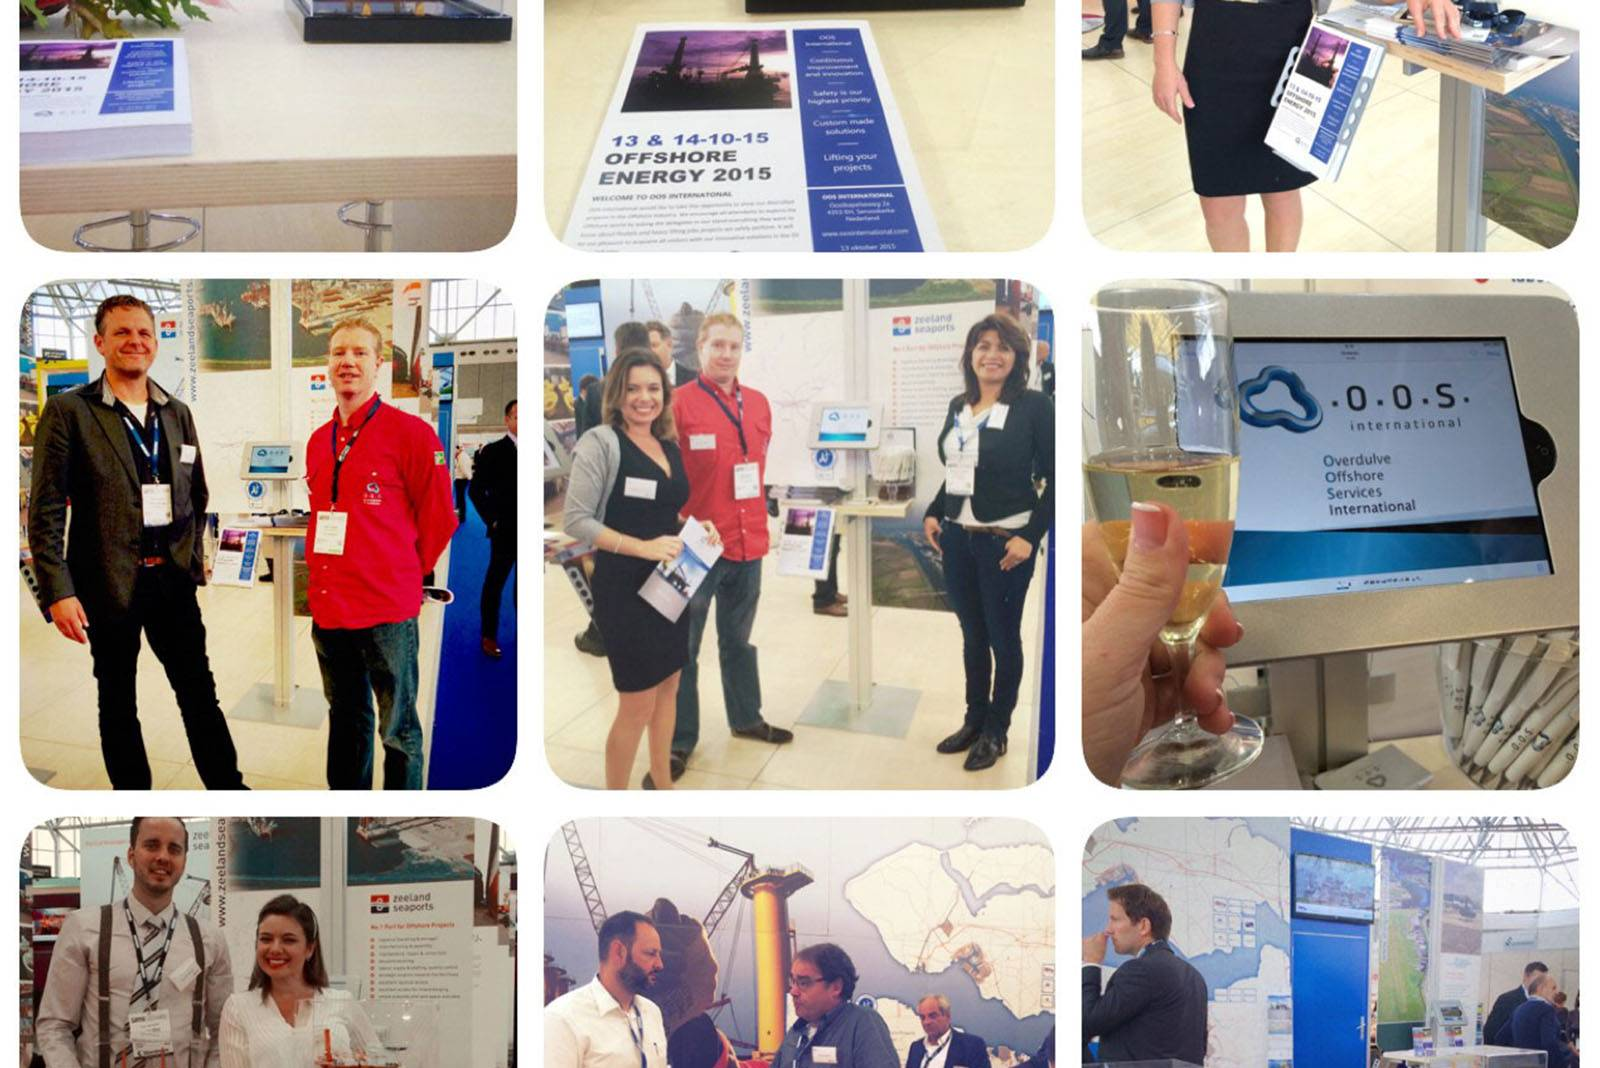 A successful first appearance at the Offshore Energy Exhibition & Conference 2015